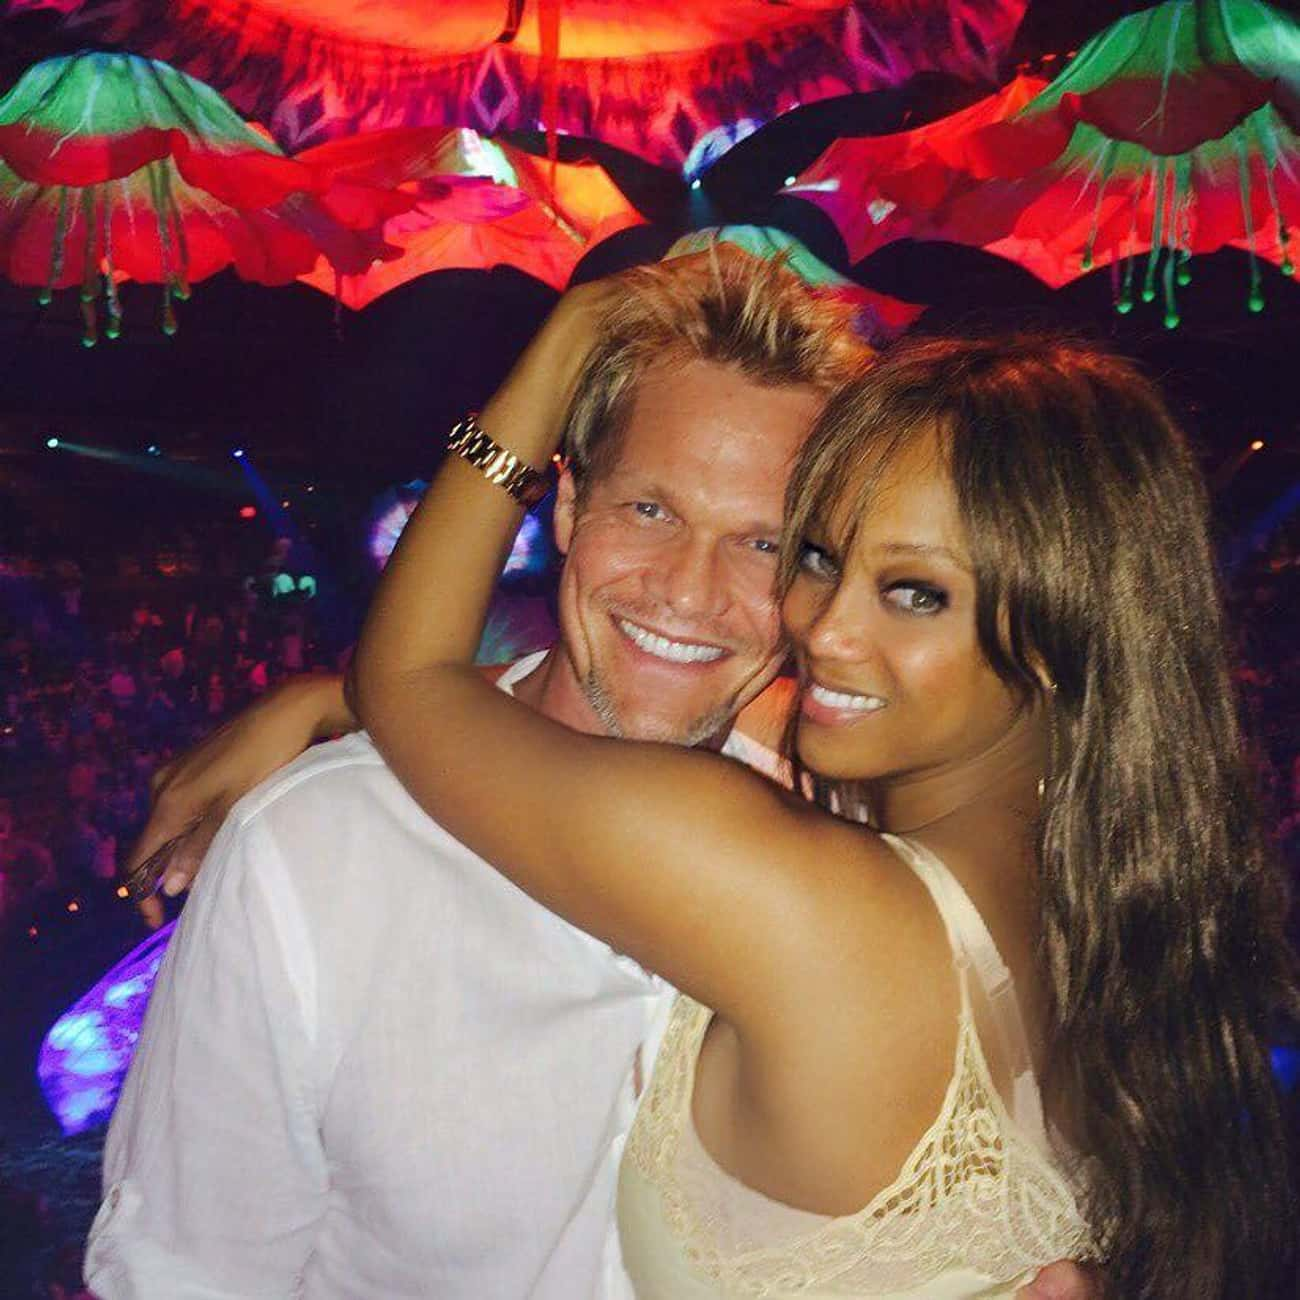 Erik Asla is listed (or ranked) 2 on the list Tyra Banks's Loves & Hookups